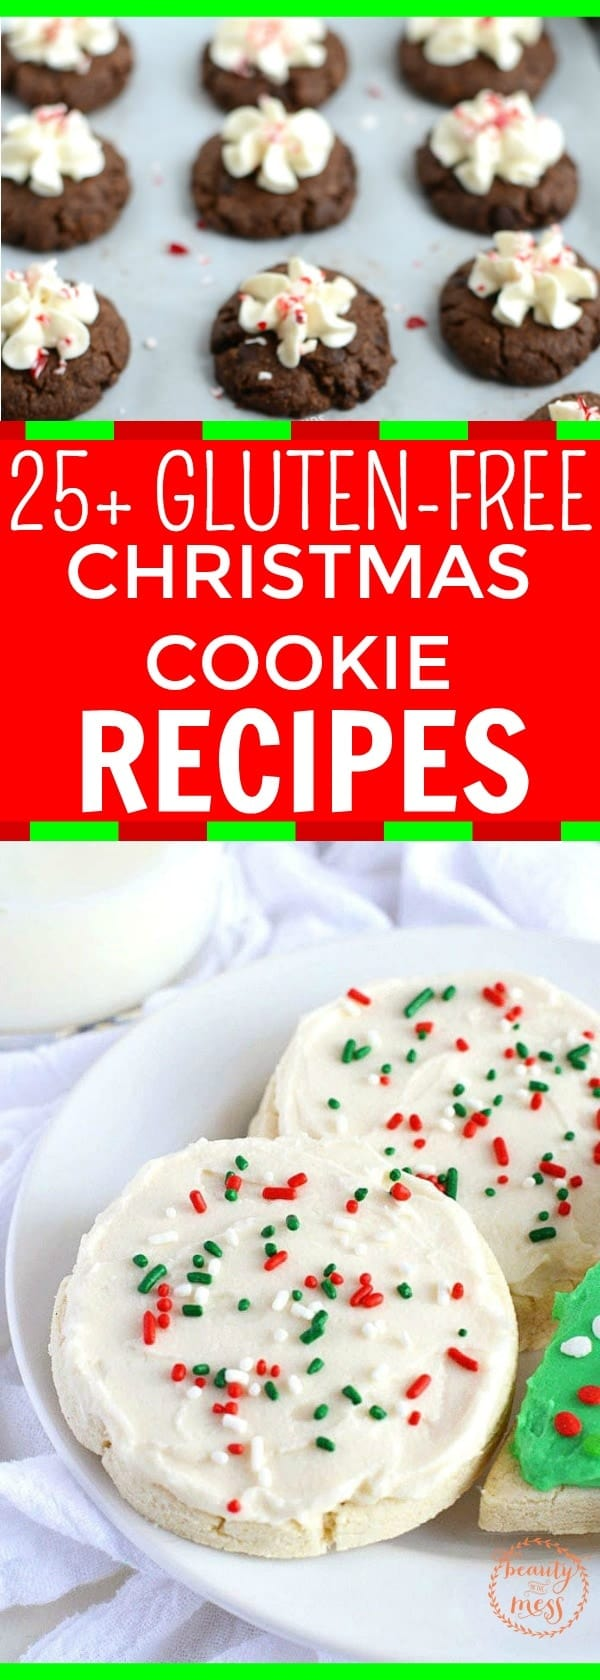 Be prepared this Christmas with these gluten-free Christmas Cookie recipes that are sure to please. They will make a great addition to your holiday treat creations for friends and family or a special time in the kitchen with your children making memories. #christmascookies #holidaysweettreats #glutenfree #cookieexchange